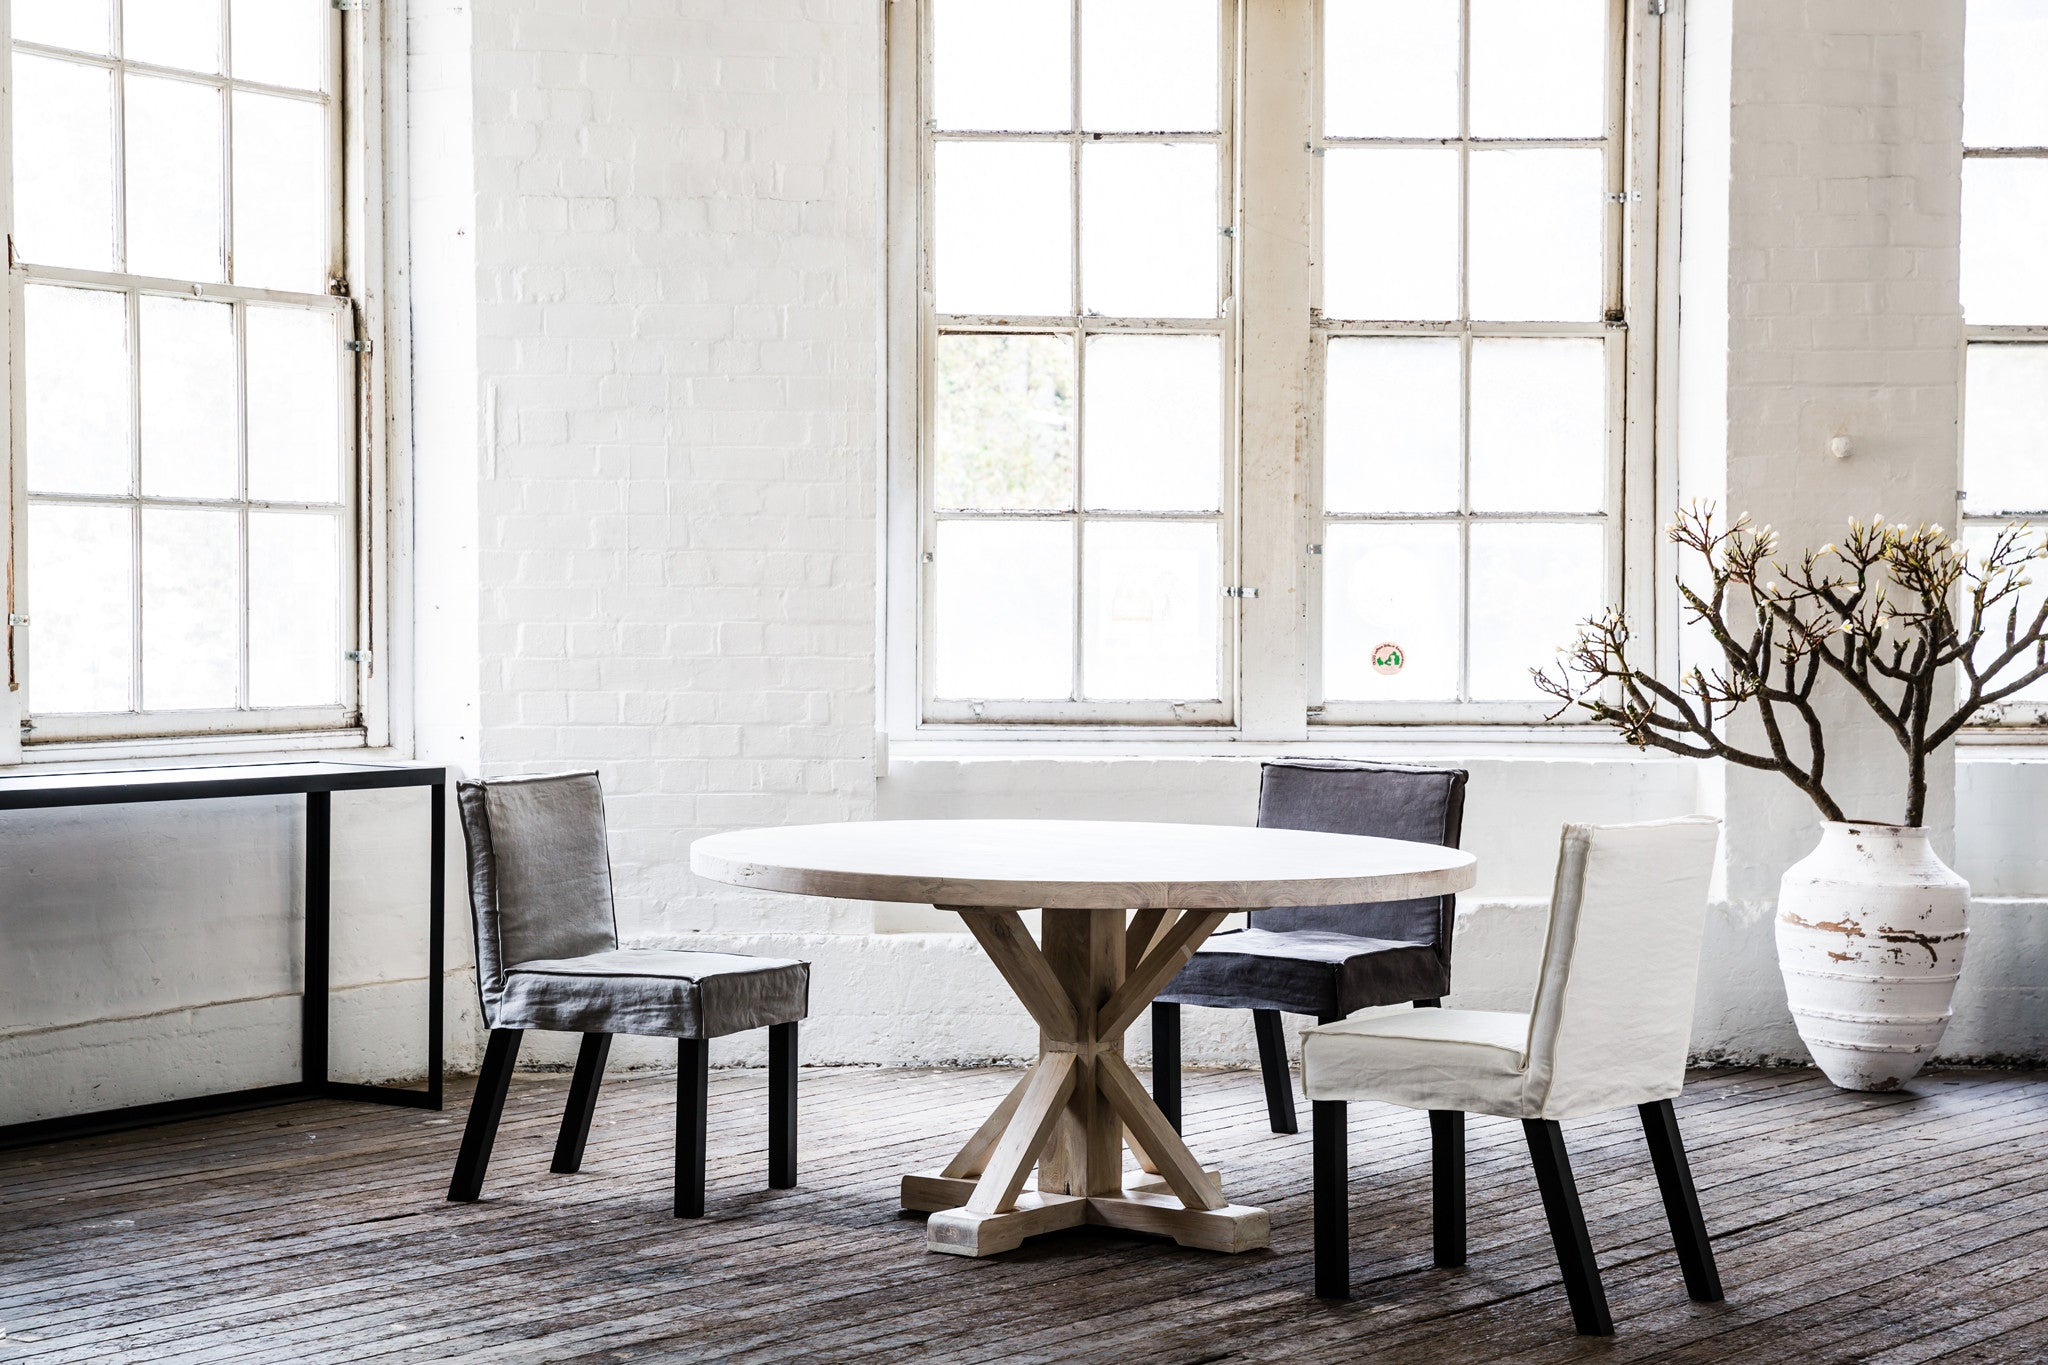 Circular Timber Dining Table Bruges Style Mcm House